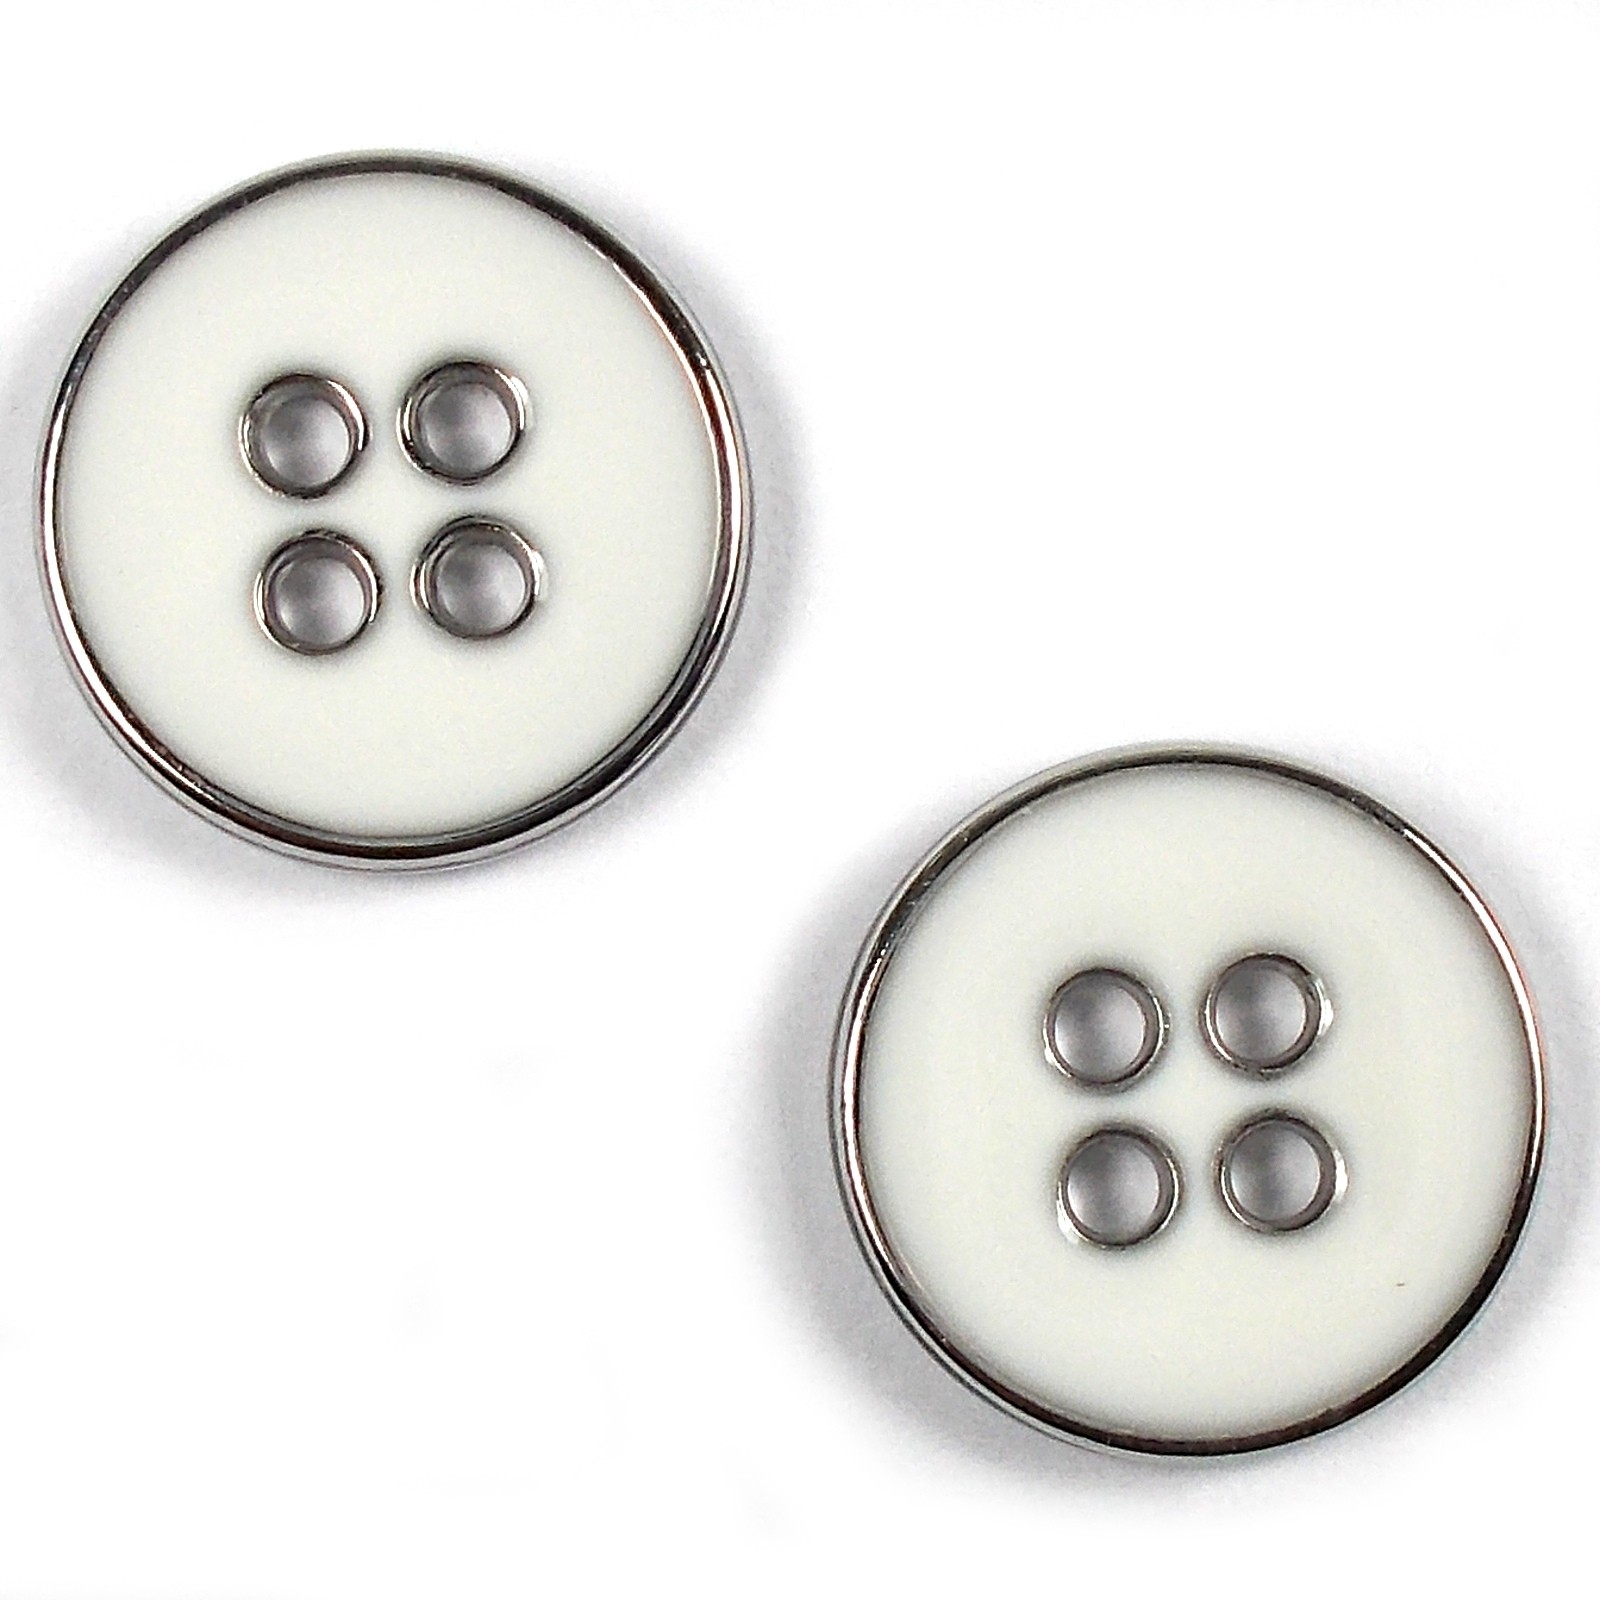 Enamel Metal 4 Hole Round Shirt Buttons 9mm White Pack of 2